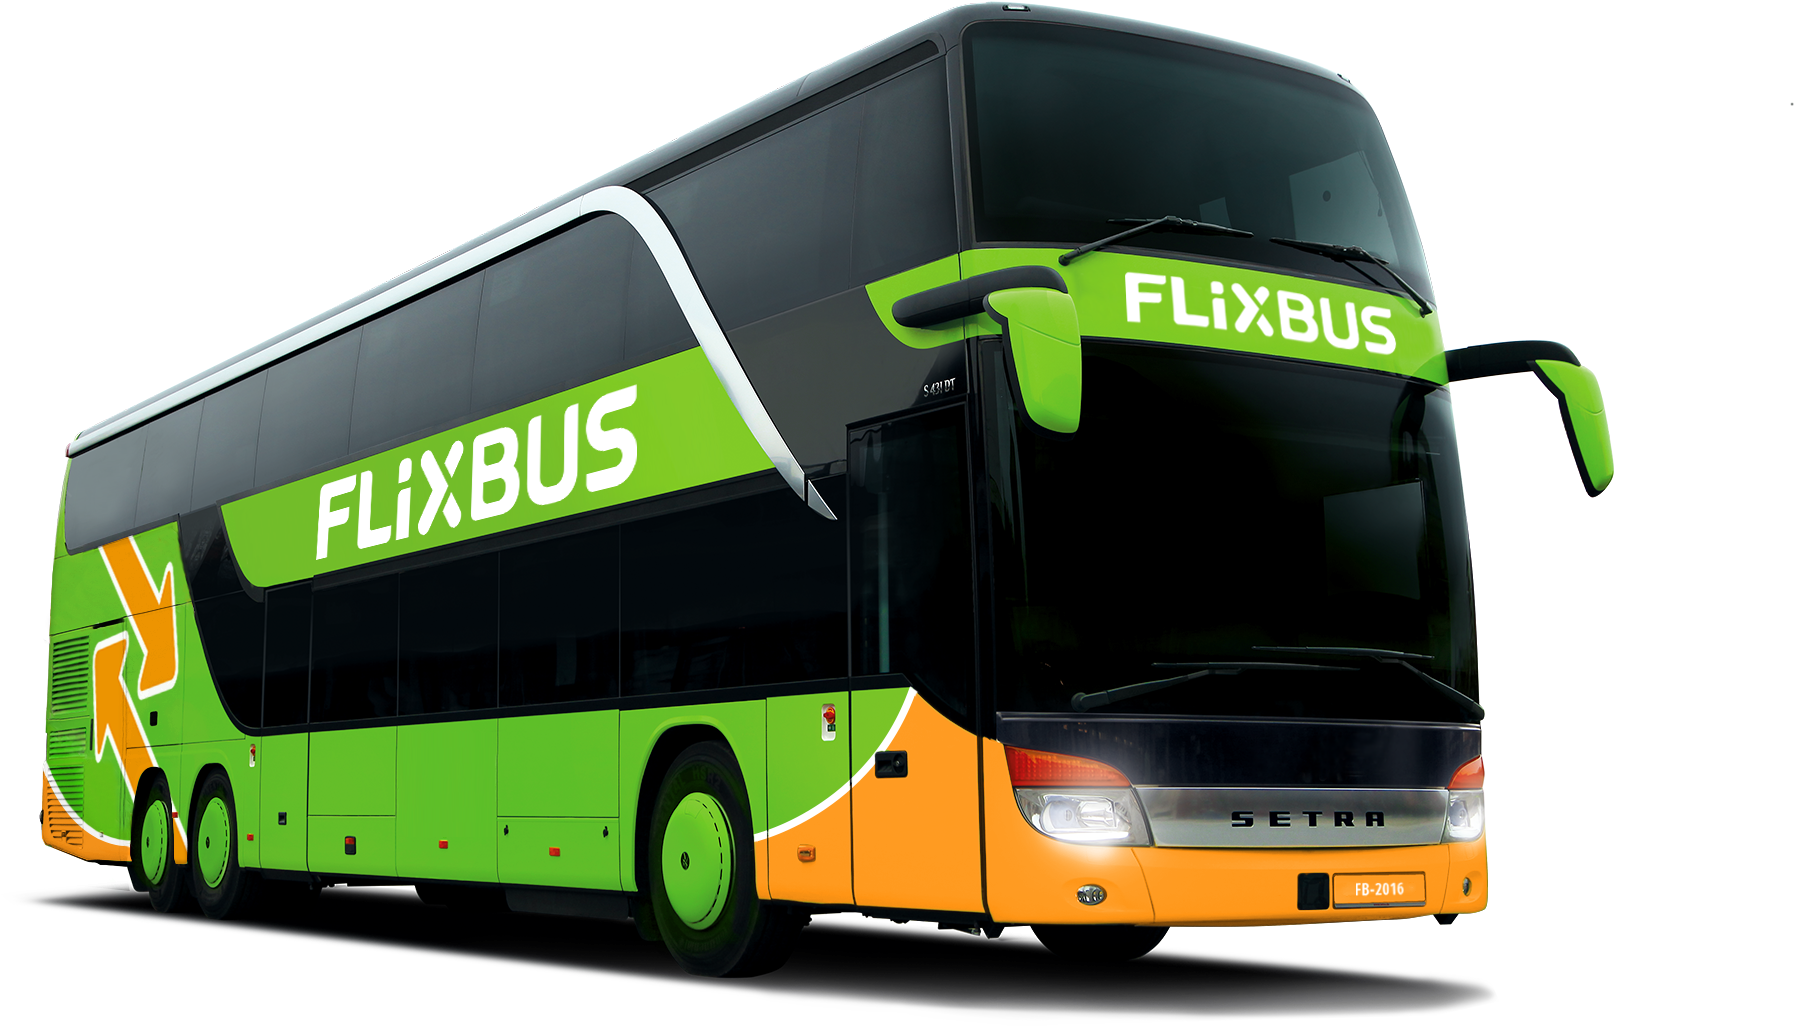 Flix Download download hd png / 1 mb - bus flix transparent png image